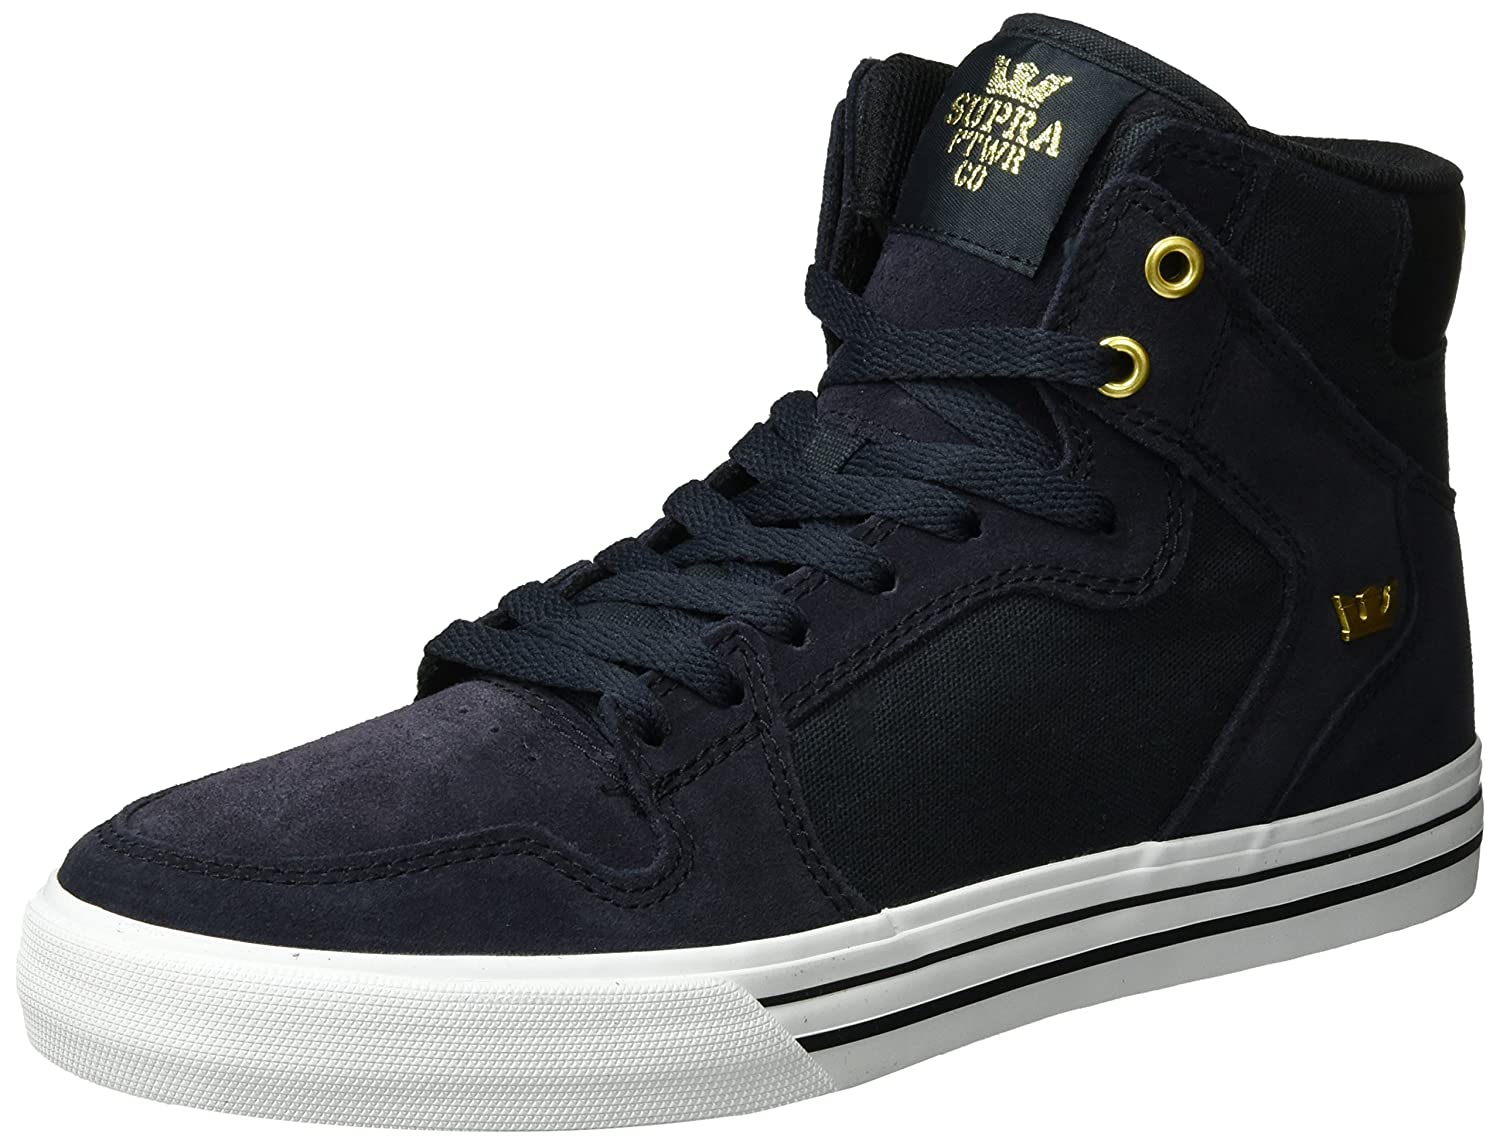 Supra Vaider LC 11 Sneaker B01IFLS6QA Medium / 11 LC C/D US Women / 9.5 D(M) US Men|Midnight/White 691686